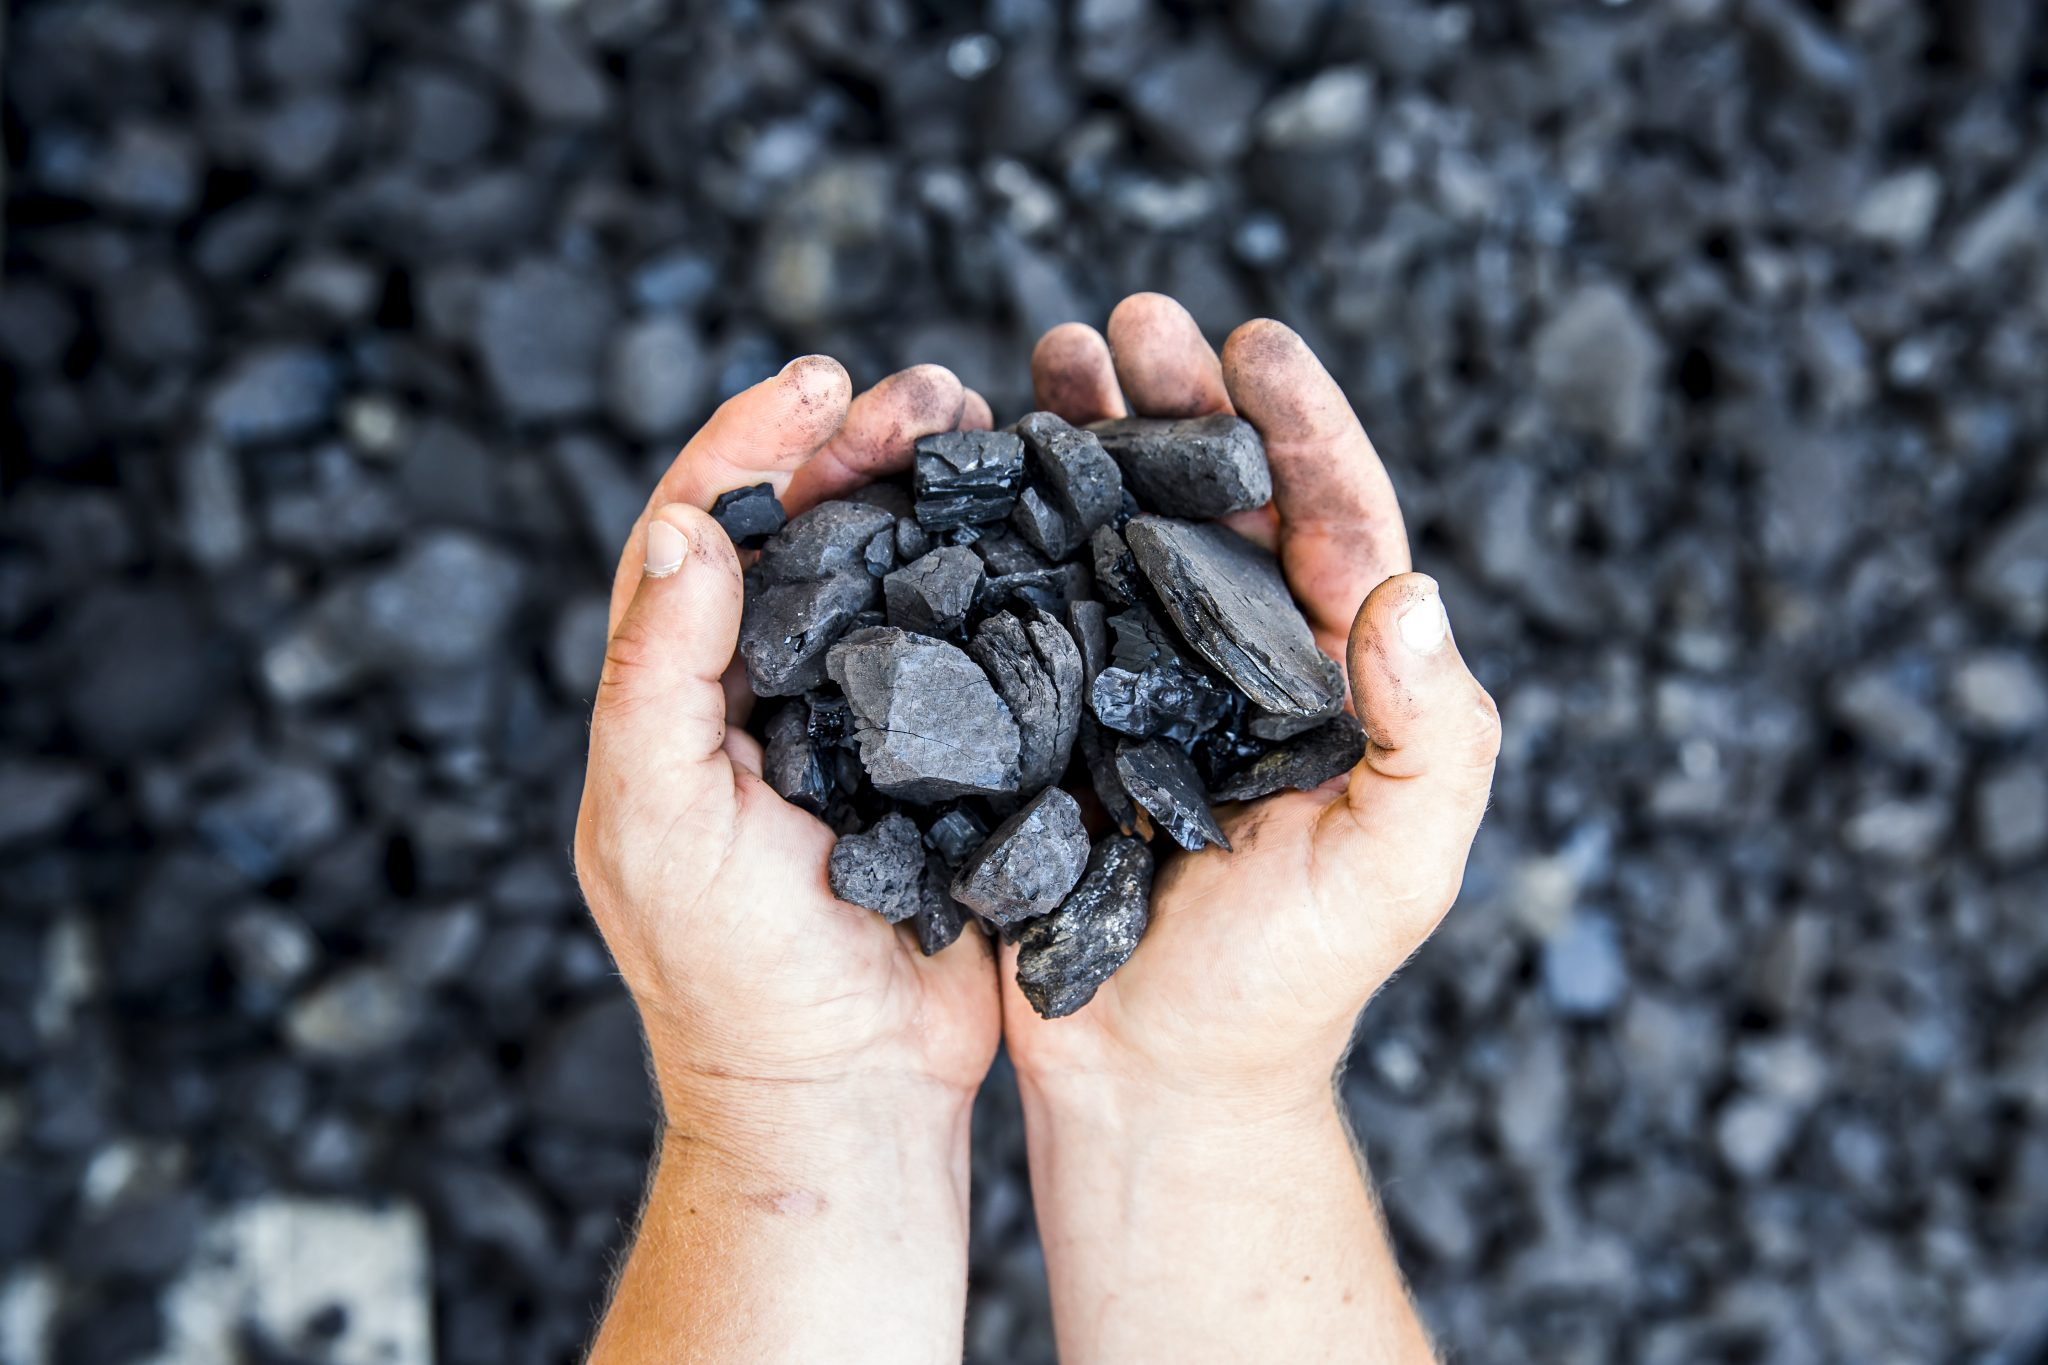 person holding black coal blairmore hotels